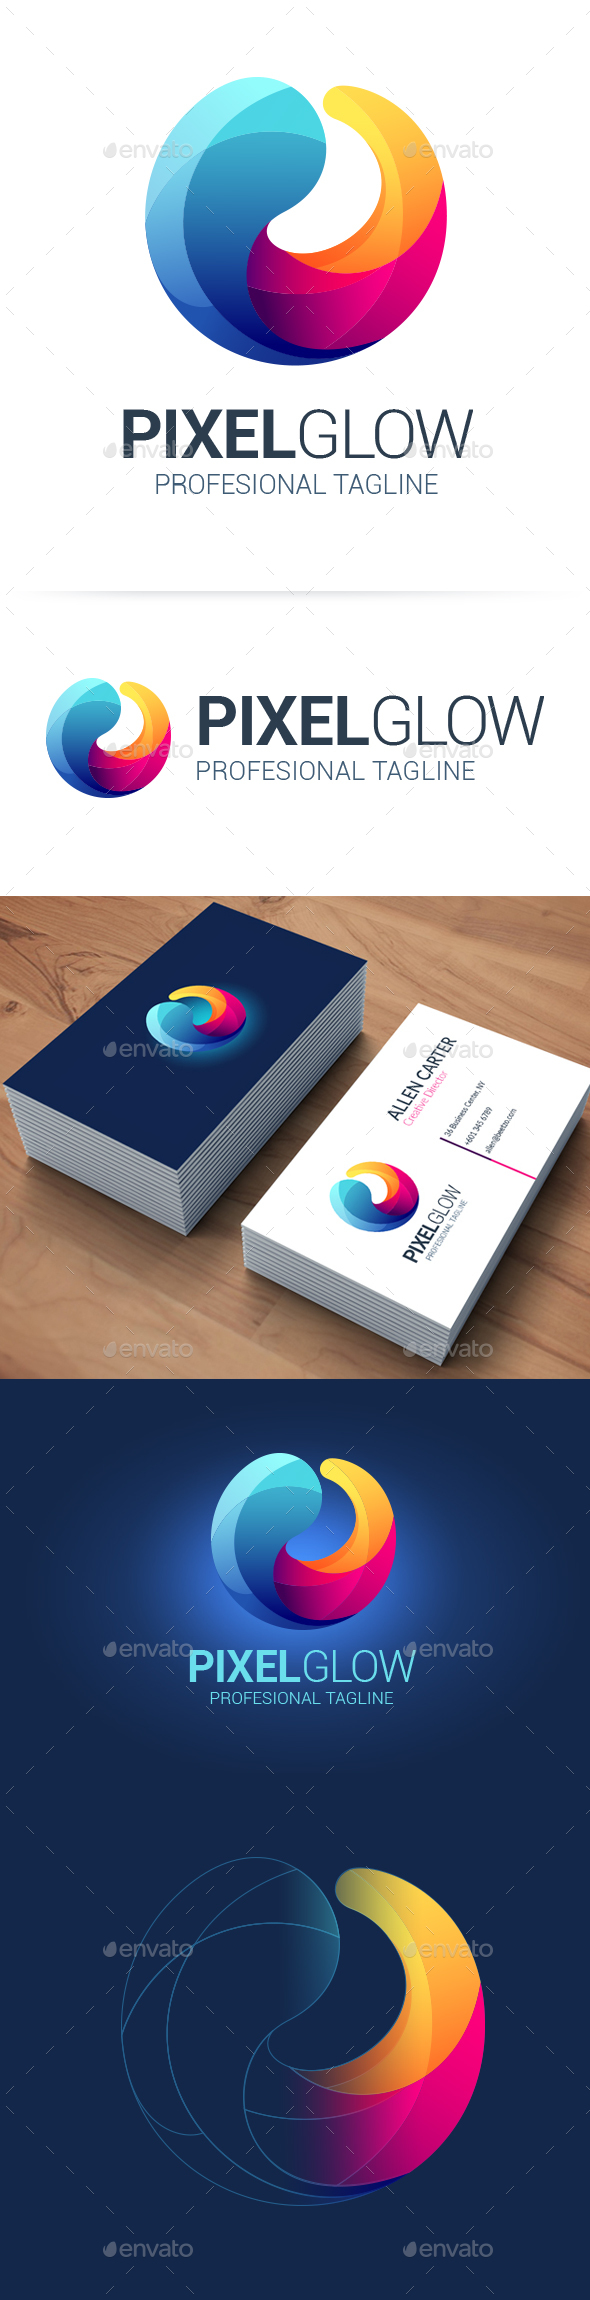 Dynamic Circle Logo - Abstract Logo Templates